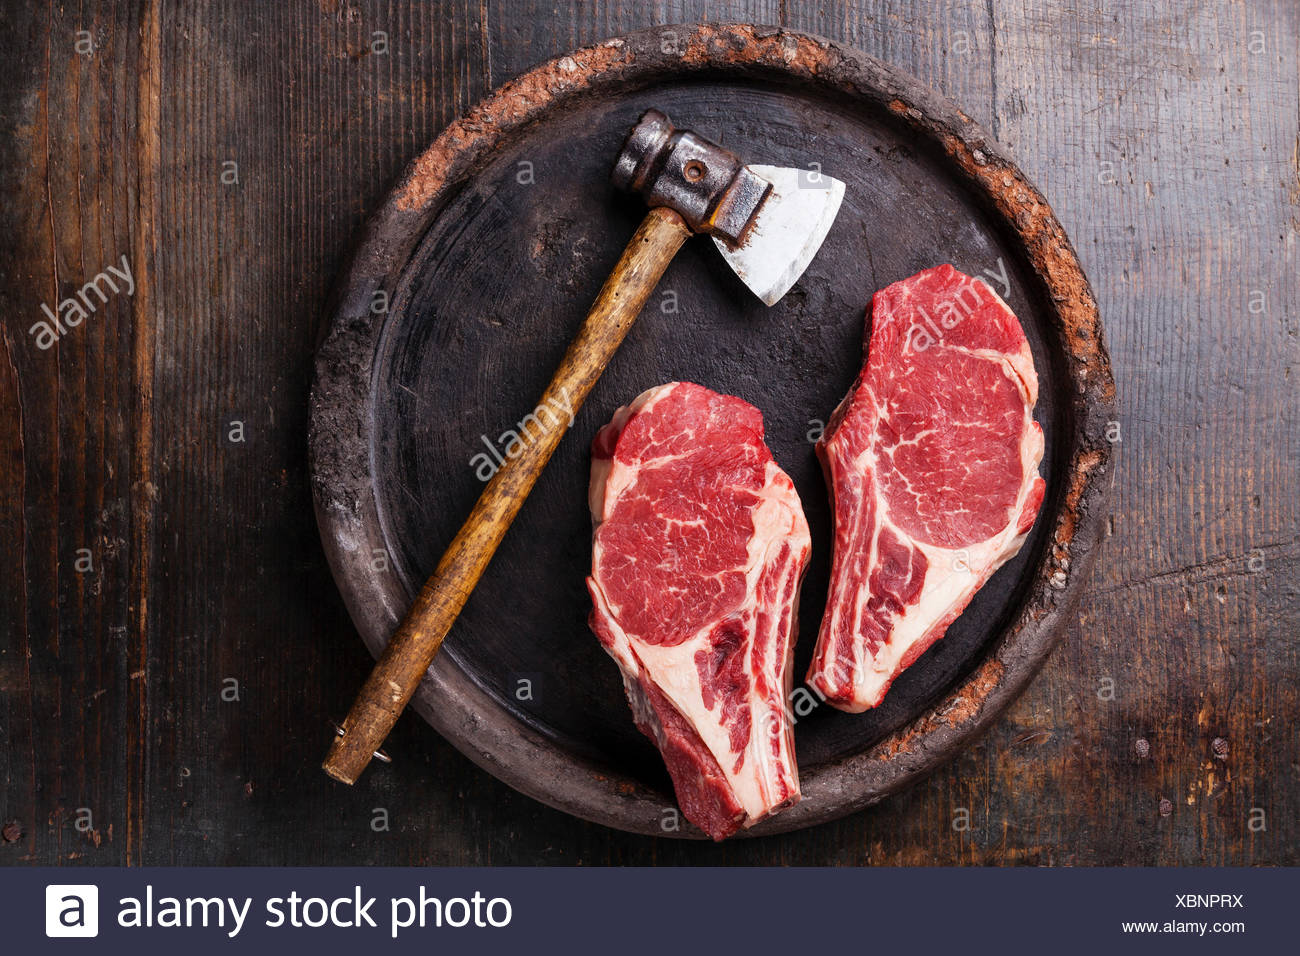 Heart shape Raw meat Ribeye steak entrecote and meat cleaver on dark background - Stock Image